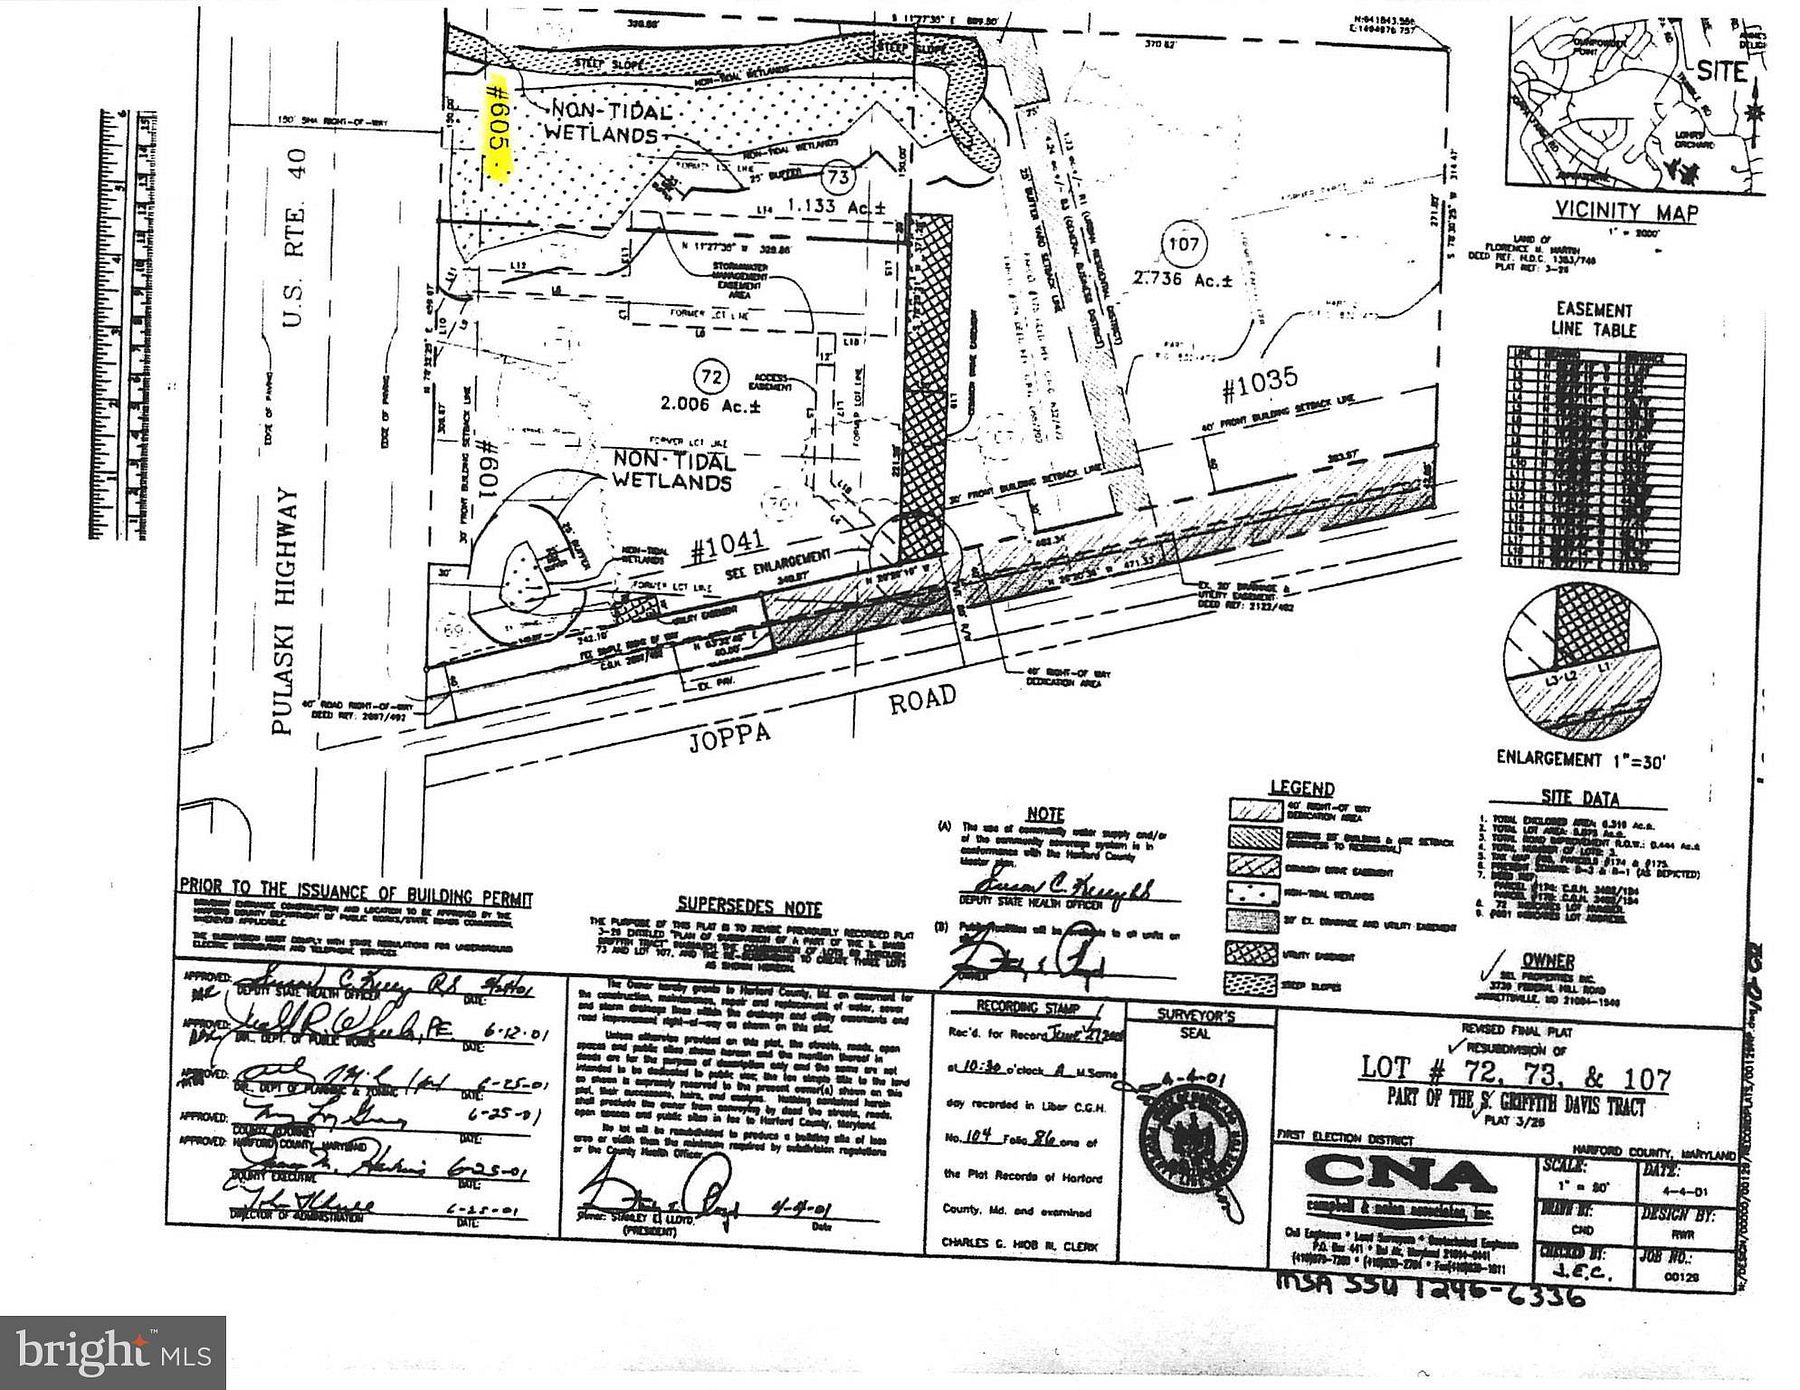 1.1 Acres of Commercial Land for Lease in Joppa, Maryland